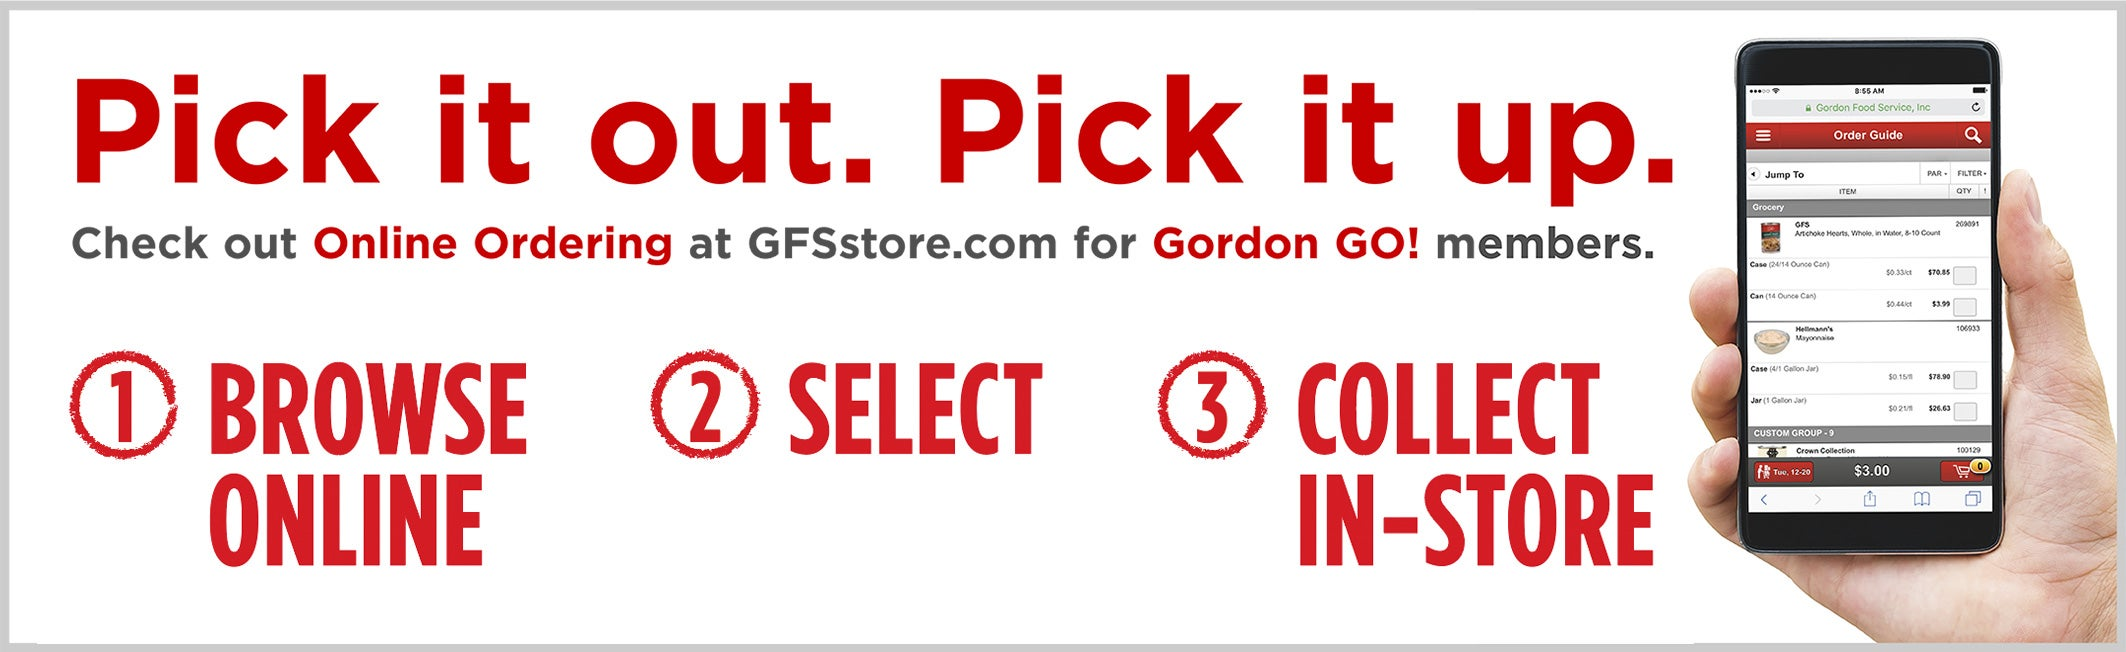 Pick it out. Pick it up. Check out Online Ordering for Gordon GO! members.